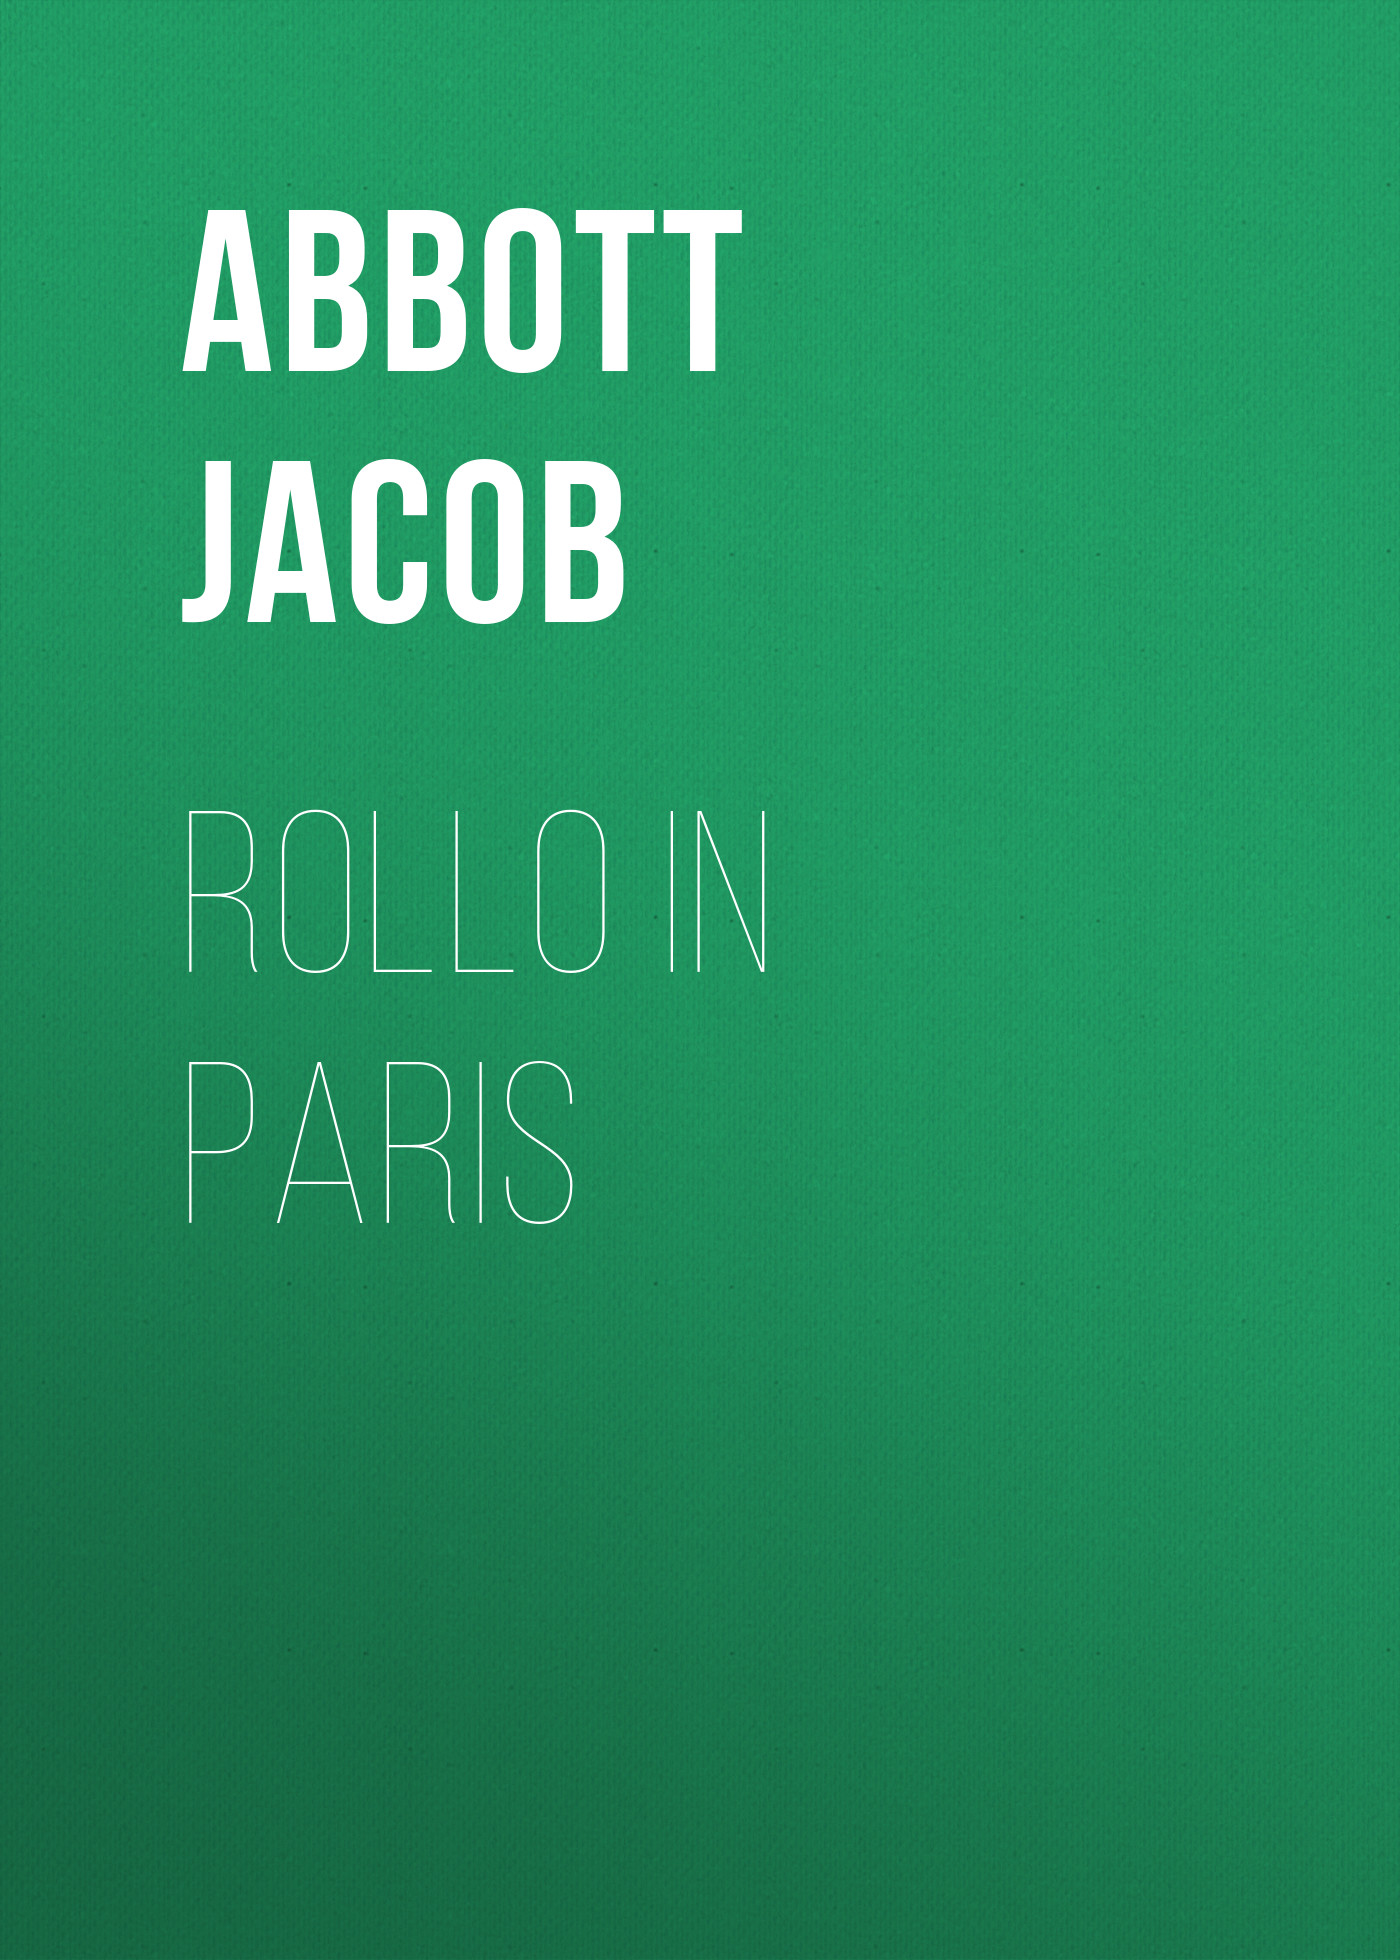 Abbott Jacob Rollo in Paris выставка munk 2019 07 03t10 00